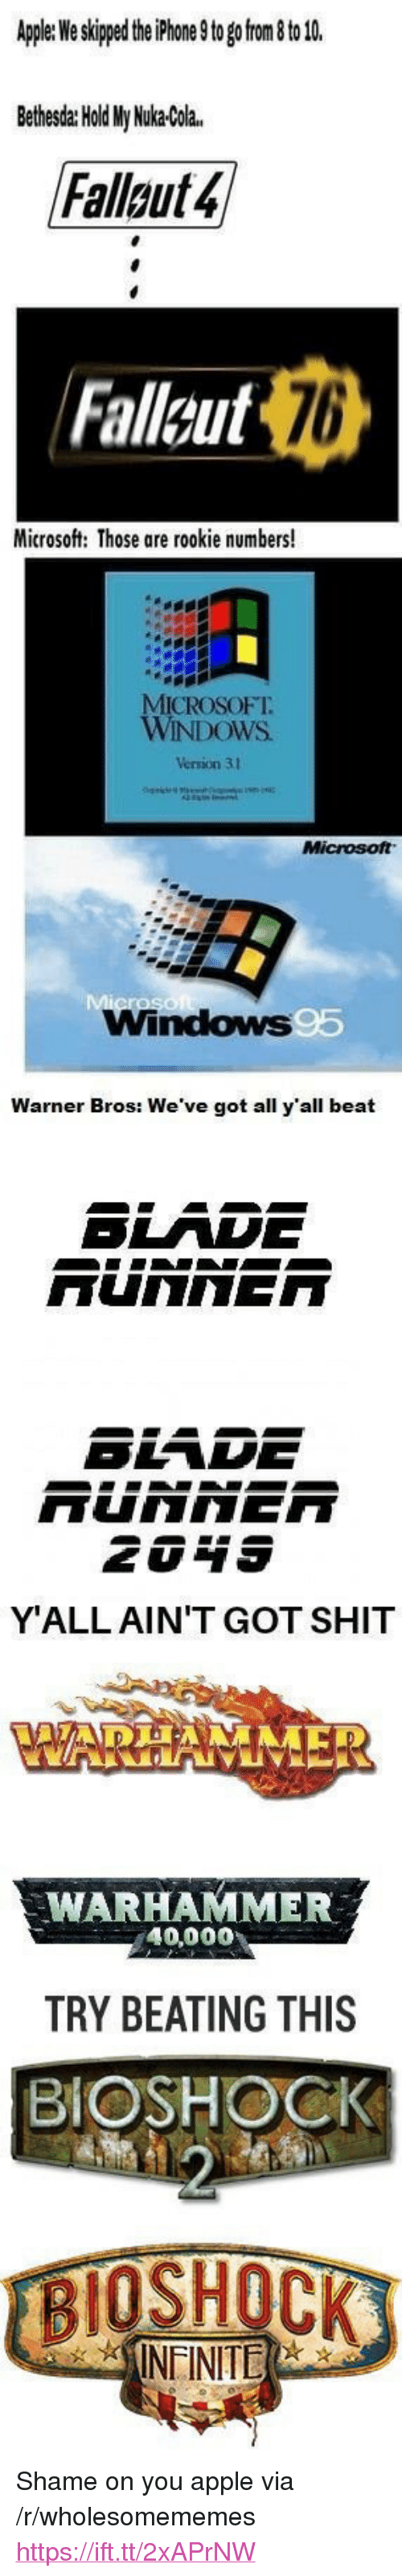 """Apple, Microsoft, and Shit: Apler We skped the hone 9to go rom to 1  Bethesda: Hold My Nuka-Cola.  Falluts  Fallcut  76  Microsoft: Those are rookie numbers!  ICROSOFT.  Versión 31  Windows  Warner Bros: We've got all y'all beat  SLADE  YALL AIN'T GOT SHIT  WARHAMMER  40,000  TRY BEATING THIS  BIOSHOCK  INEINITE <p>Shame on you apple via /r/wholesomememes <a href=""""https://ift.tt/2xAPrNW"""">https://ift.tt/2xAPrNW</a></p>"""